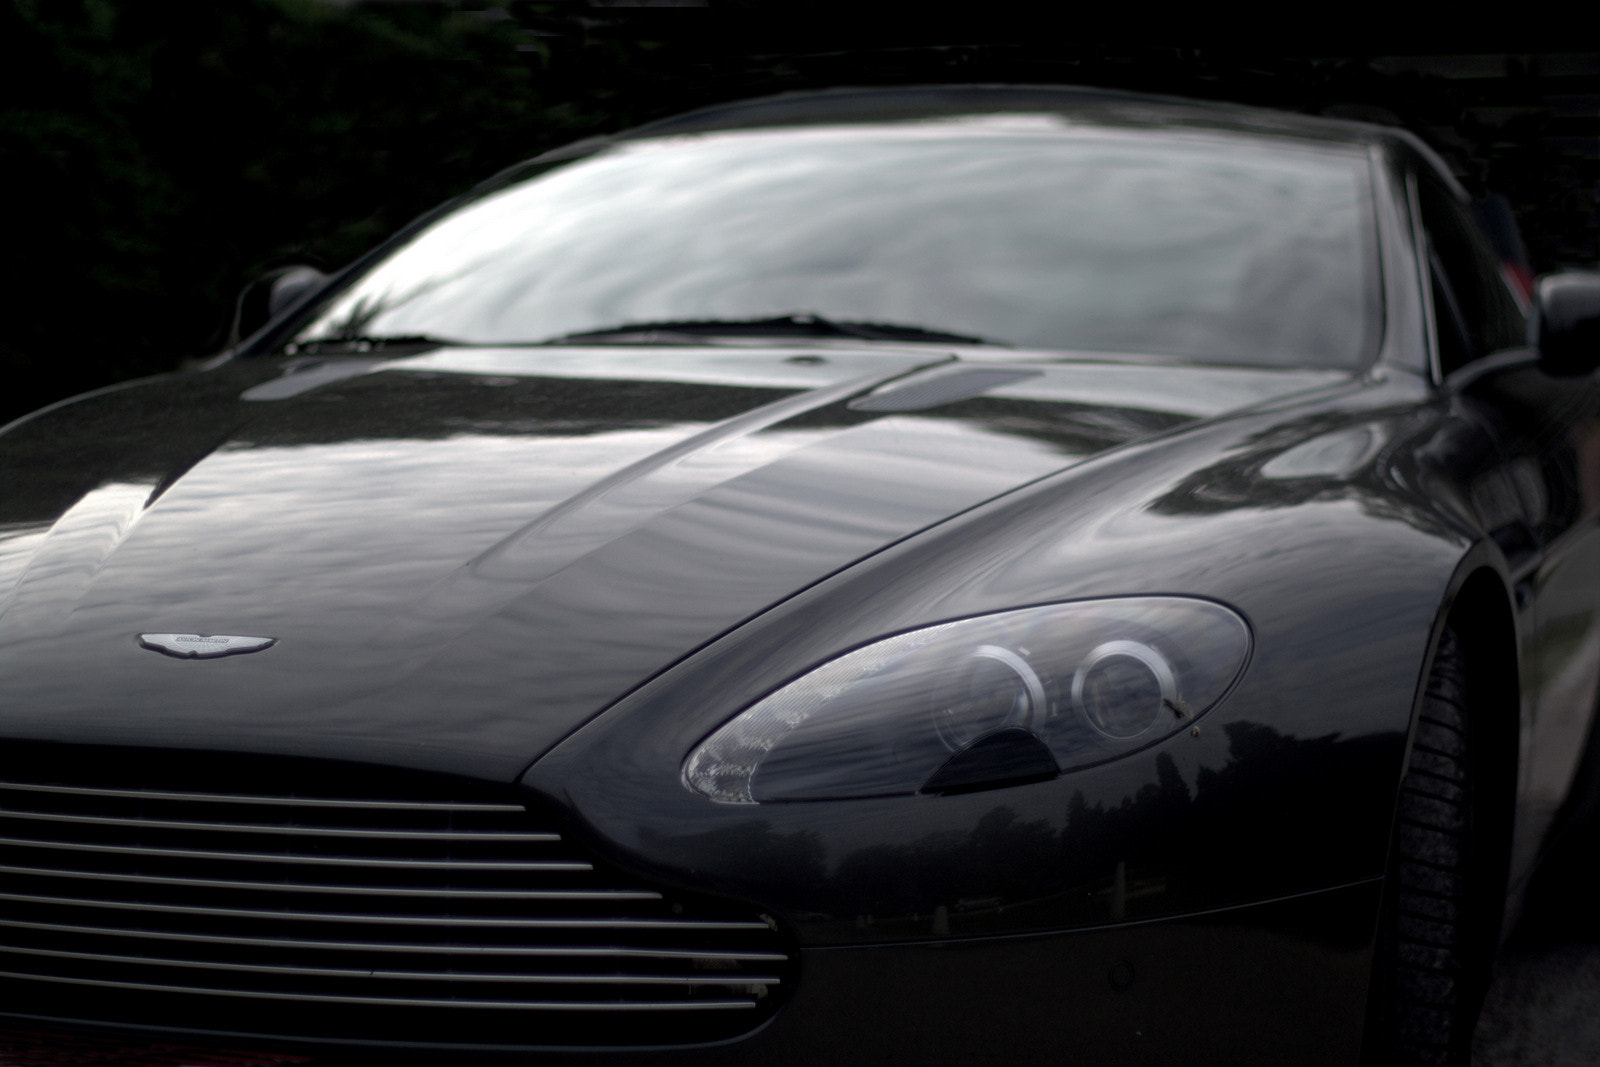 Photograph Aston martin by Steuker Photographie on 500px